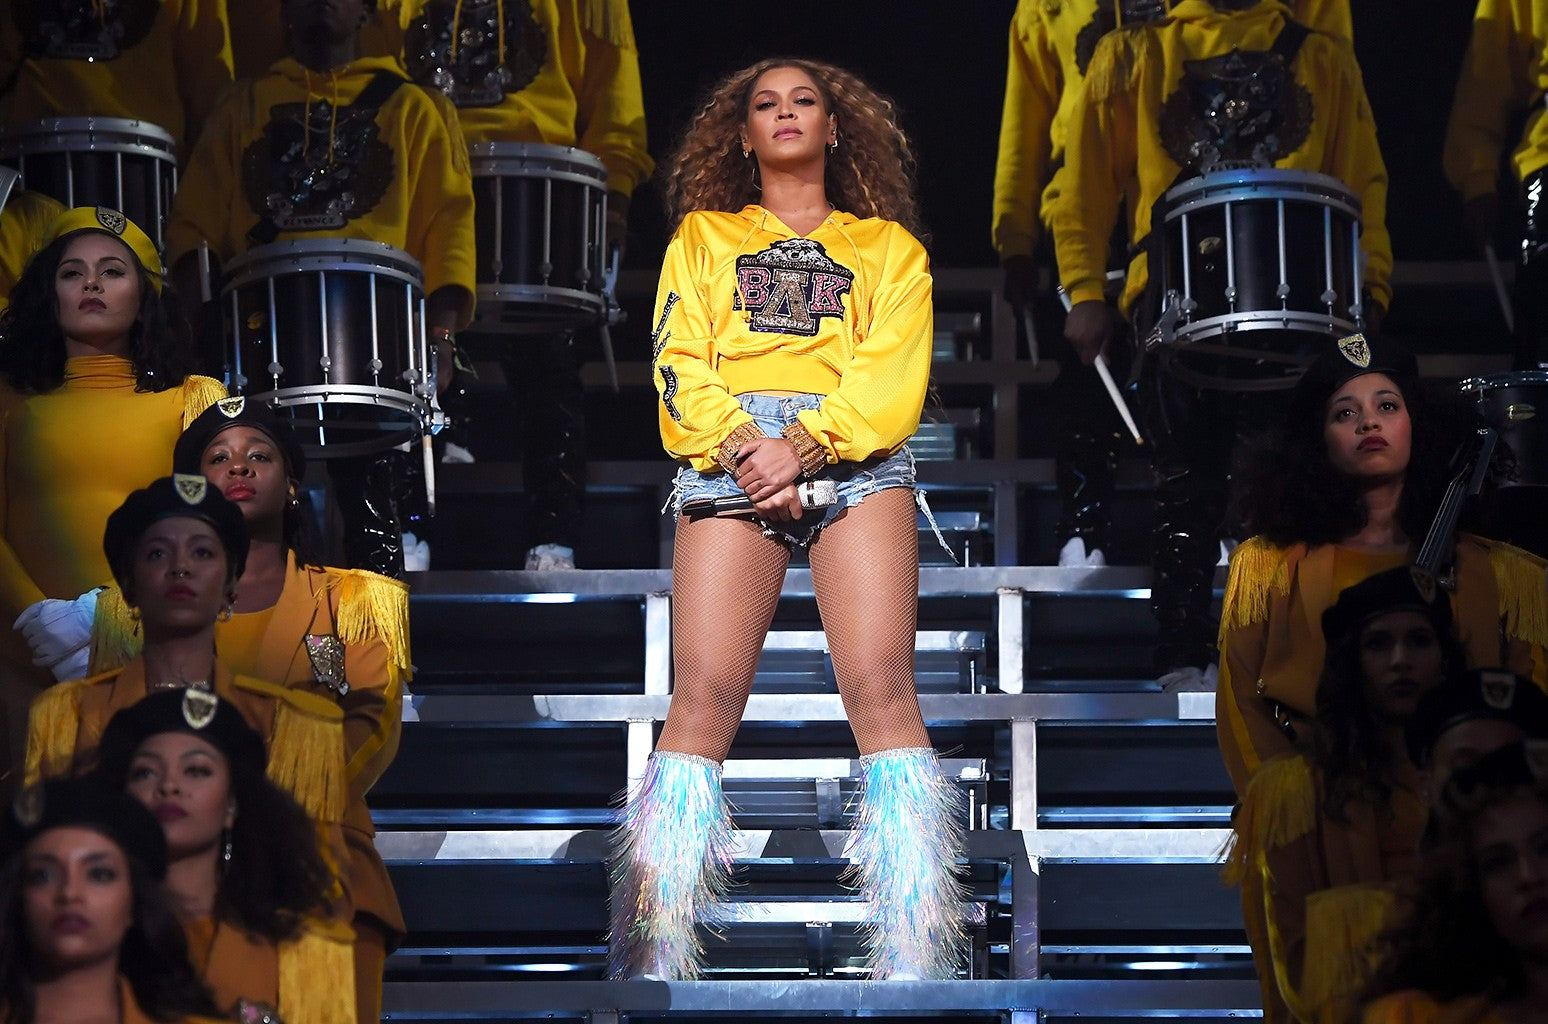 Beyonce Knowles Carter wearing fishnet tights at Coachella 2019 for her Homecoming performance featuring HBCUs